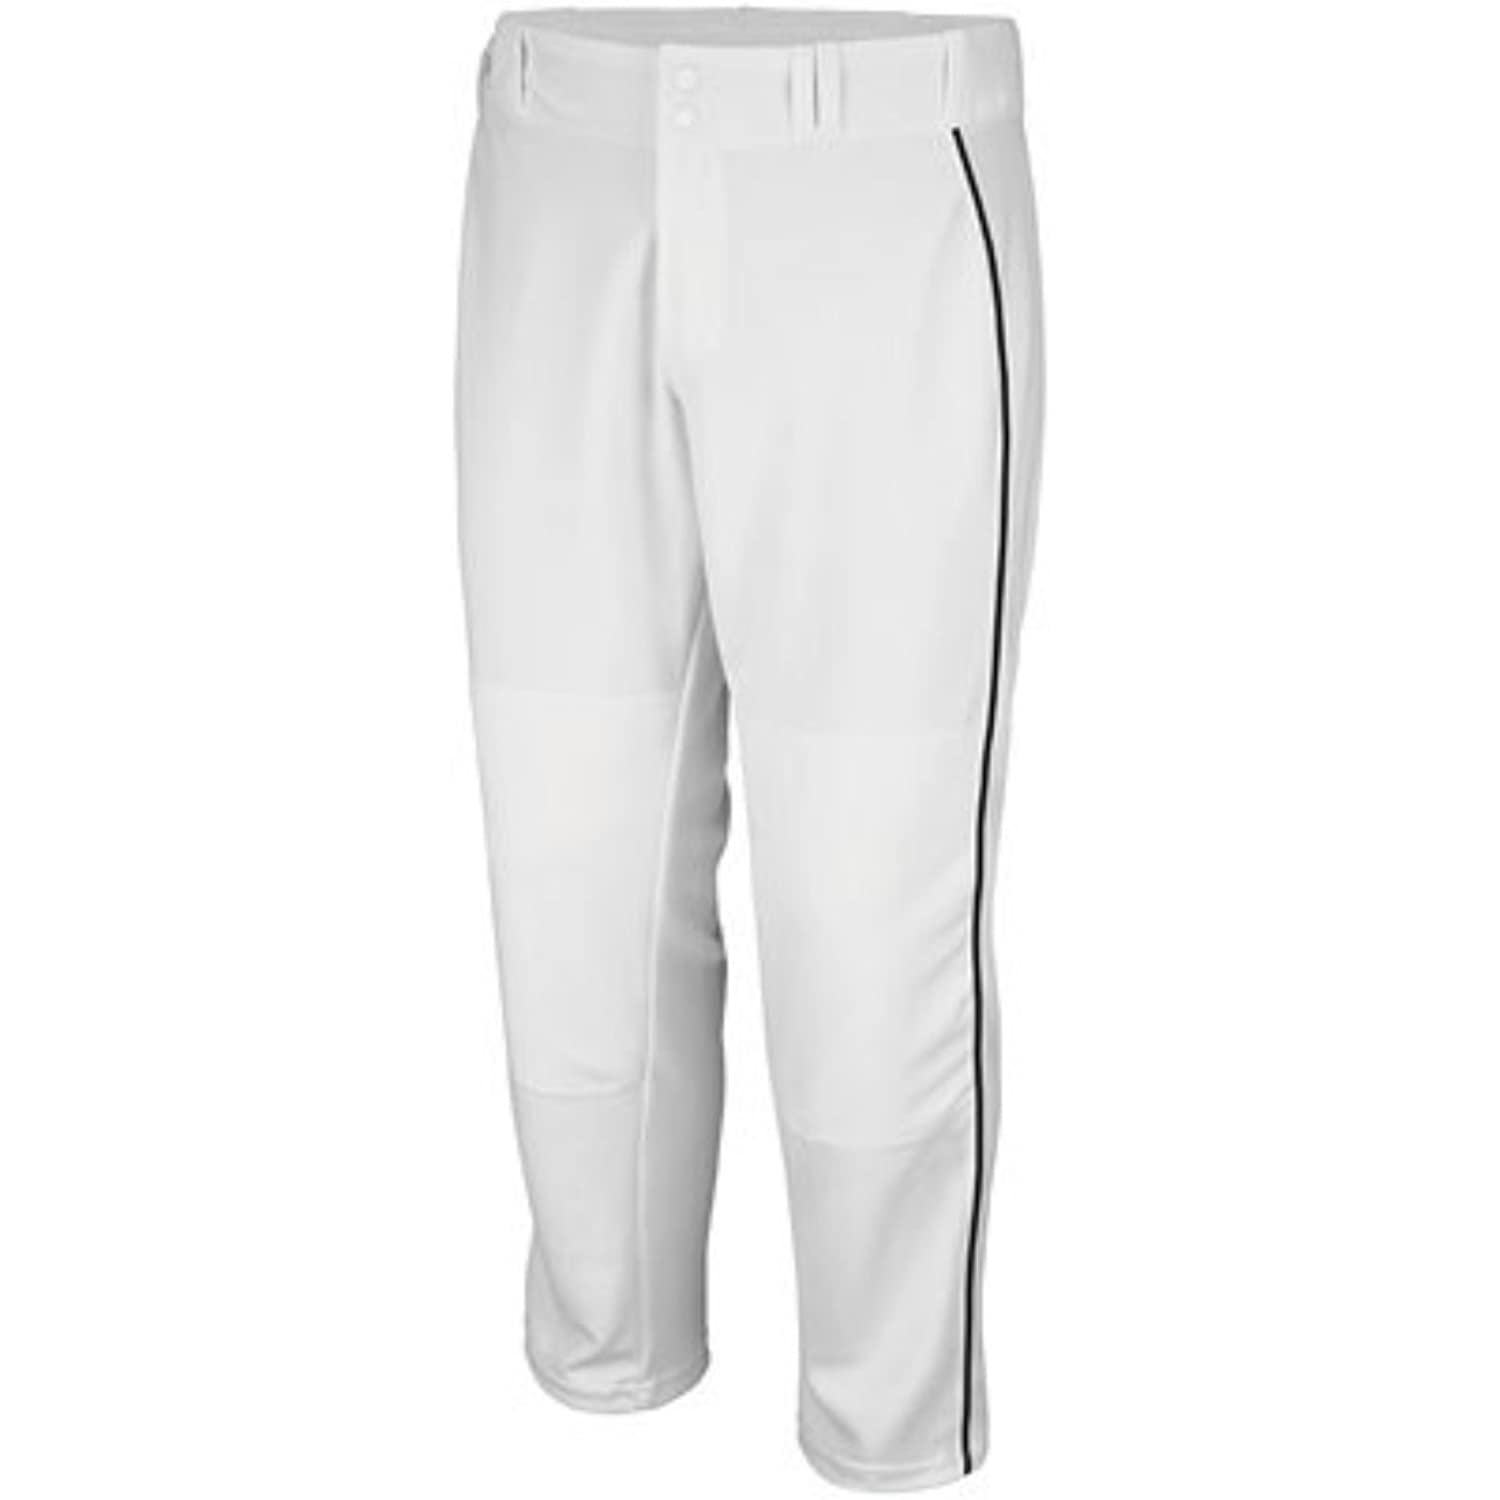 .Majestic Athletic PANTS メンズ B07573218GWhite W/ Black Piping X-Large